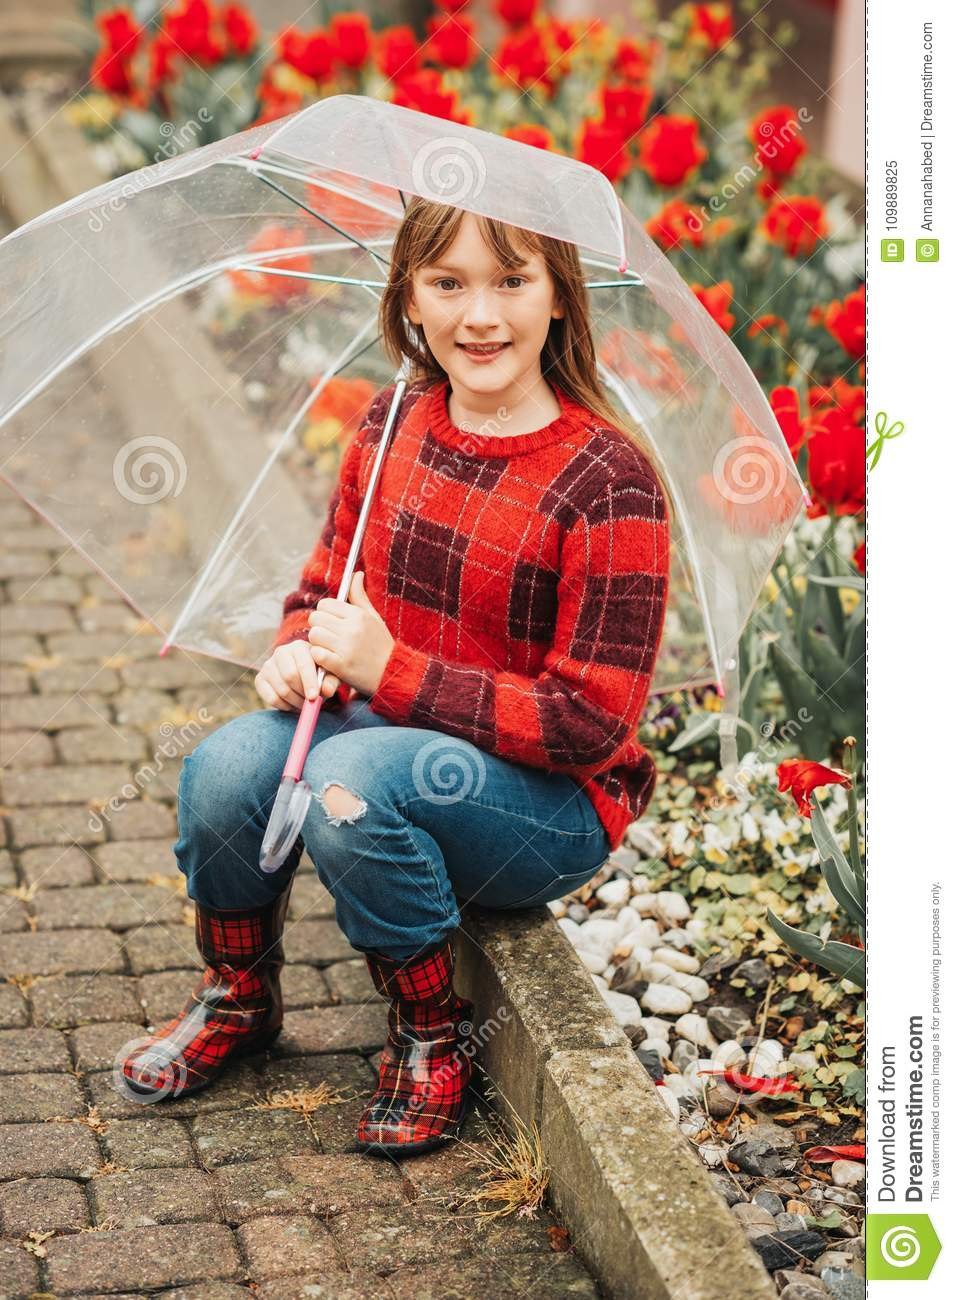 d9f53dab5 Outdoor Portrait Of A Cute Little 9 Year Old Girl Stock Image ...